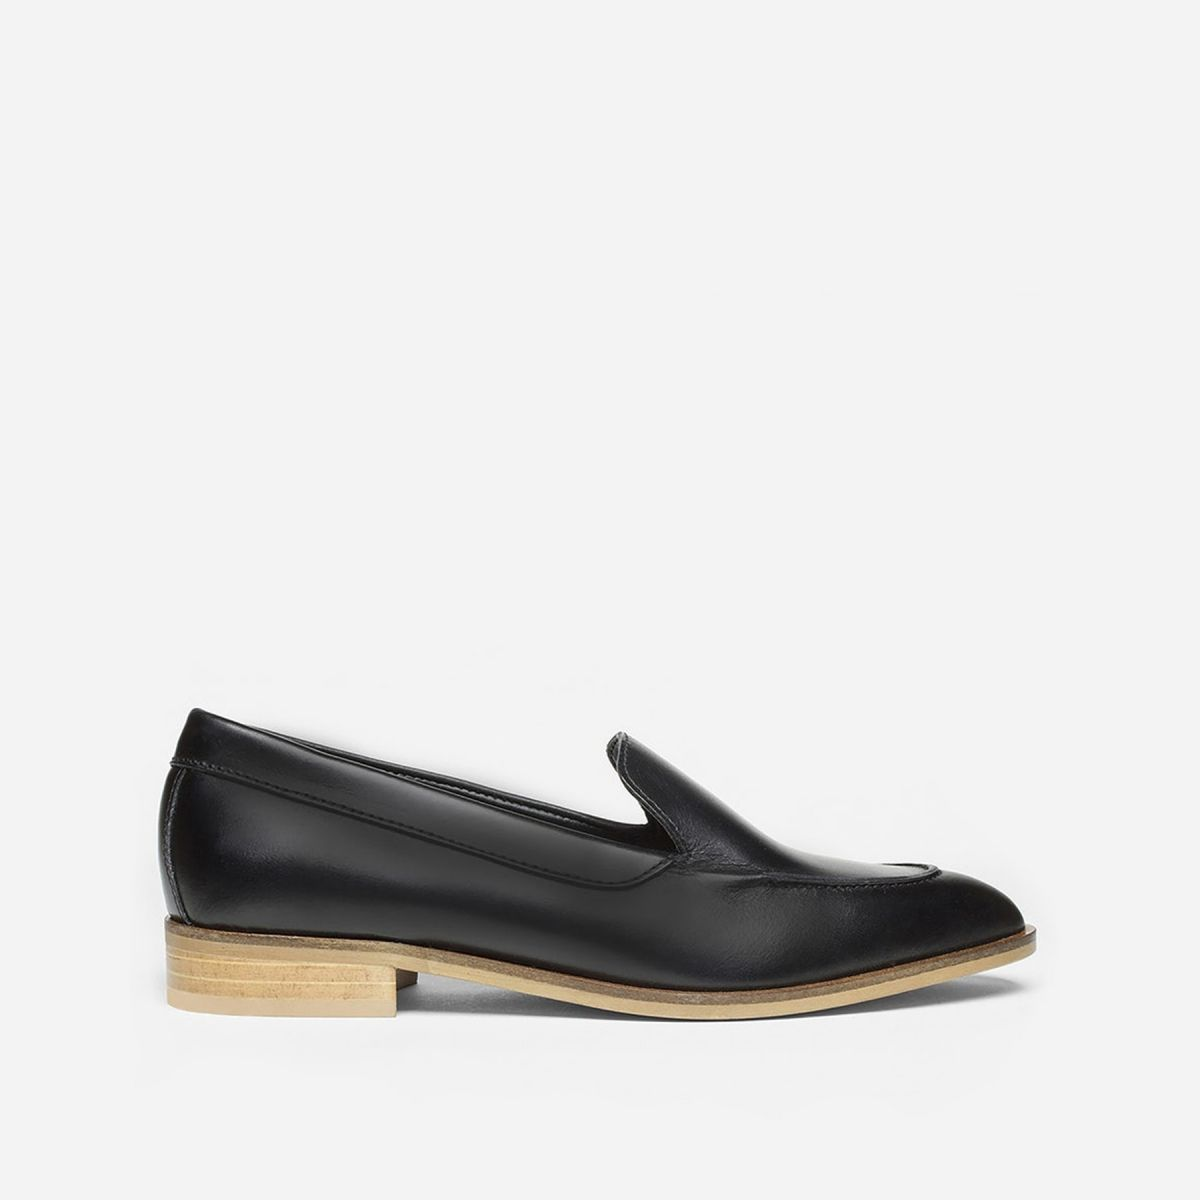 The black Modern Loafer by Everlane